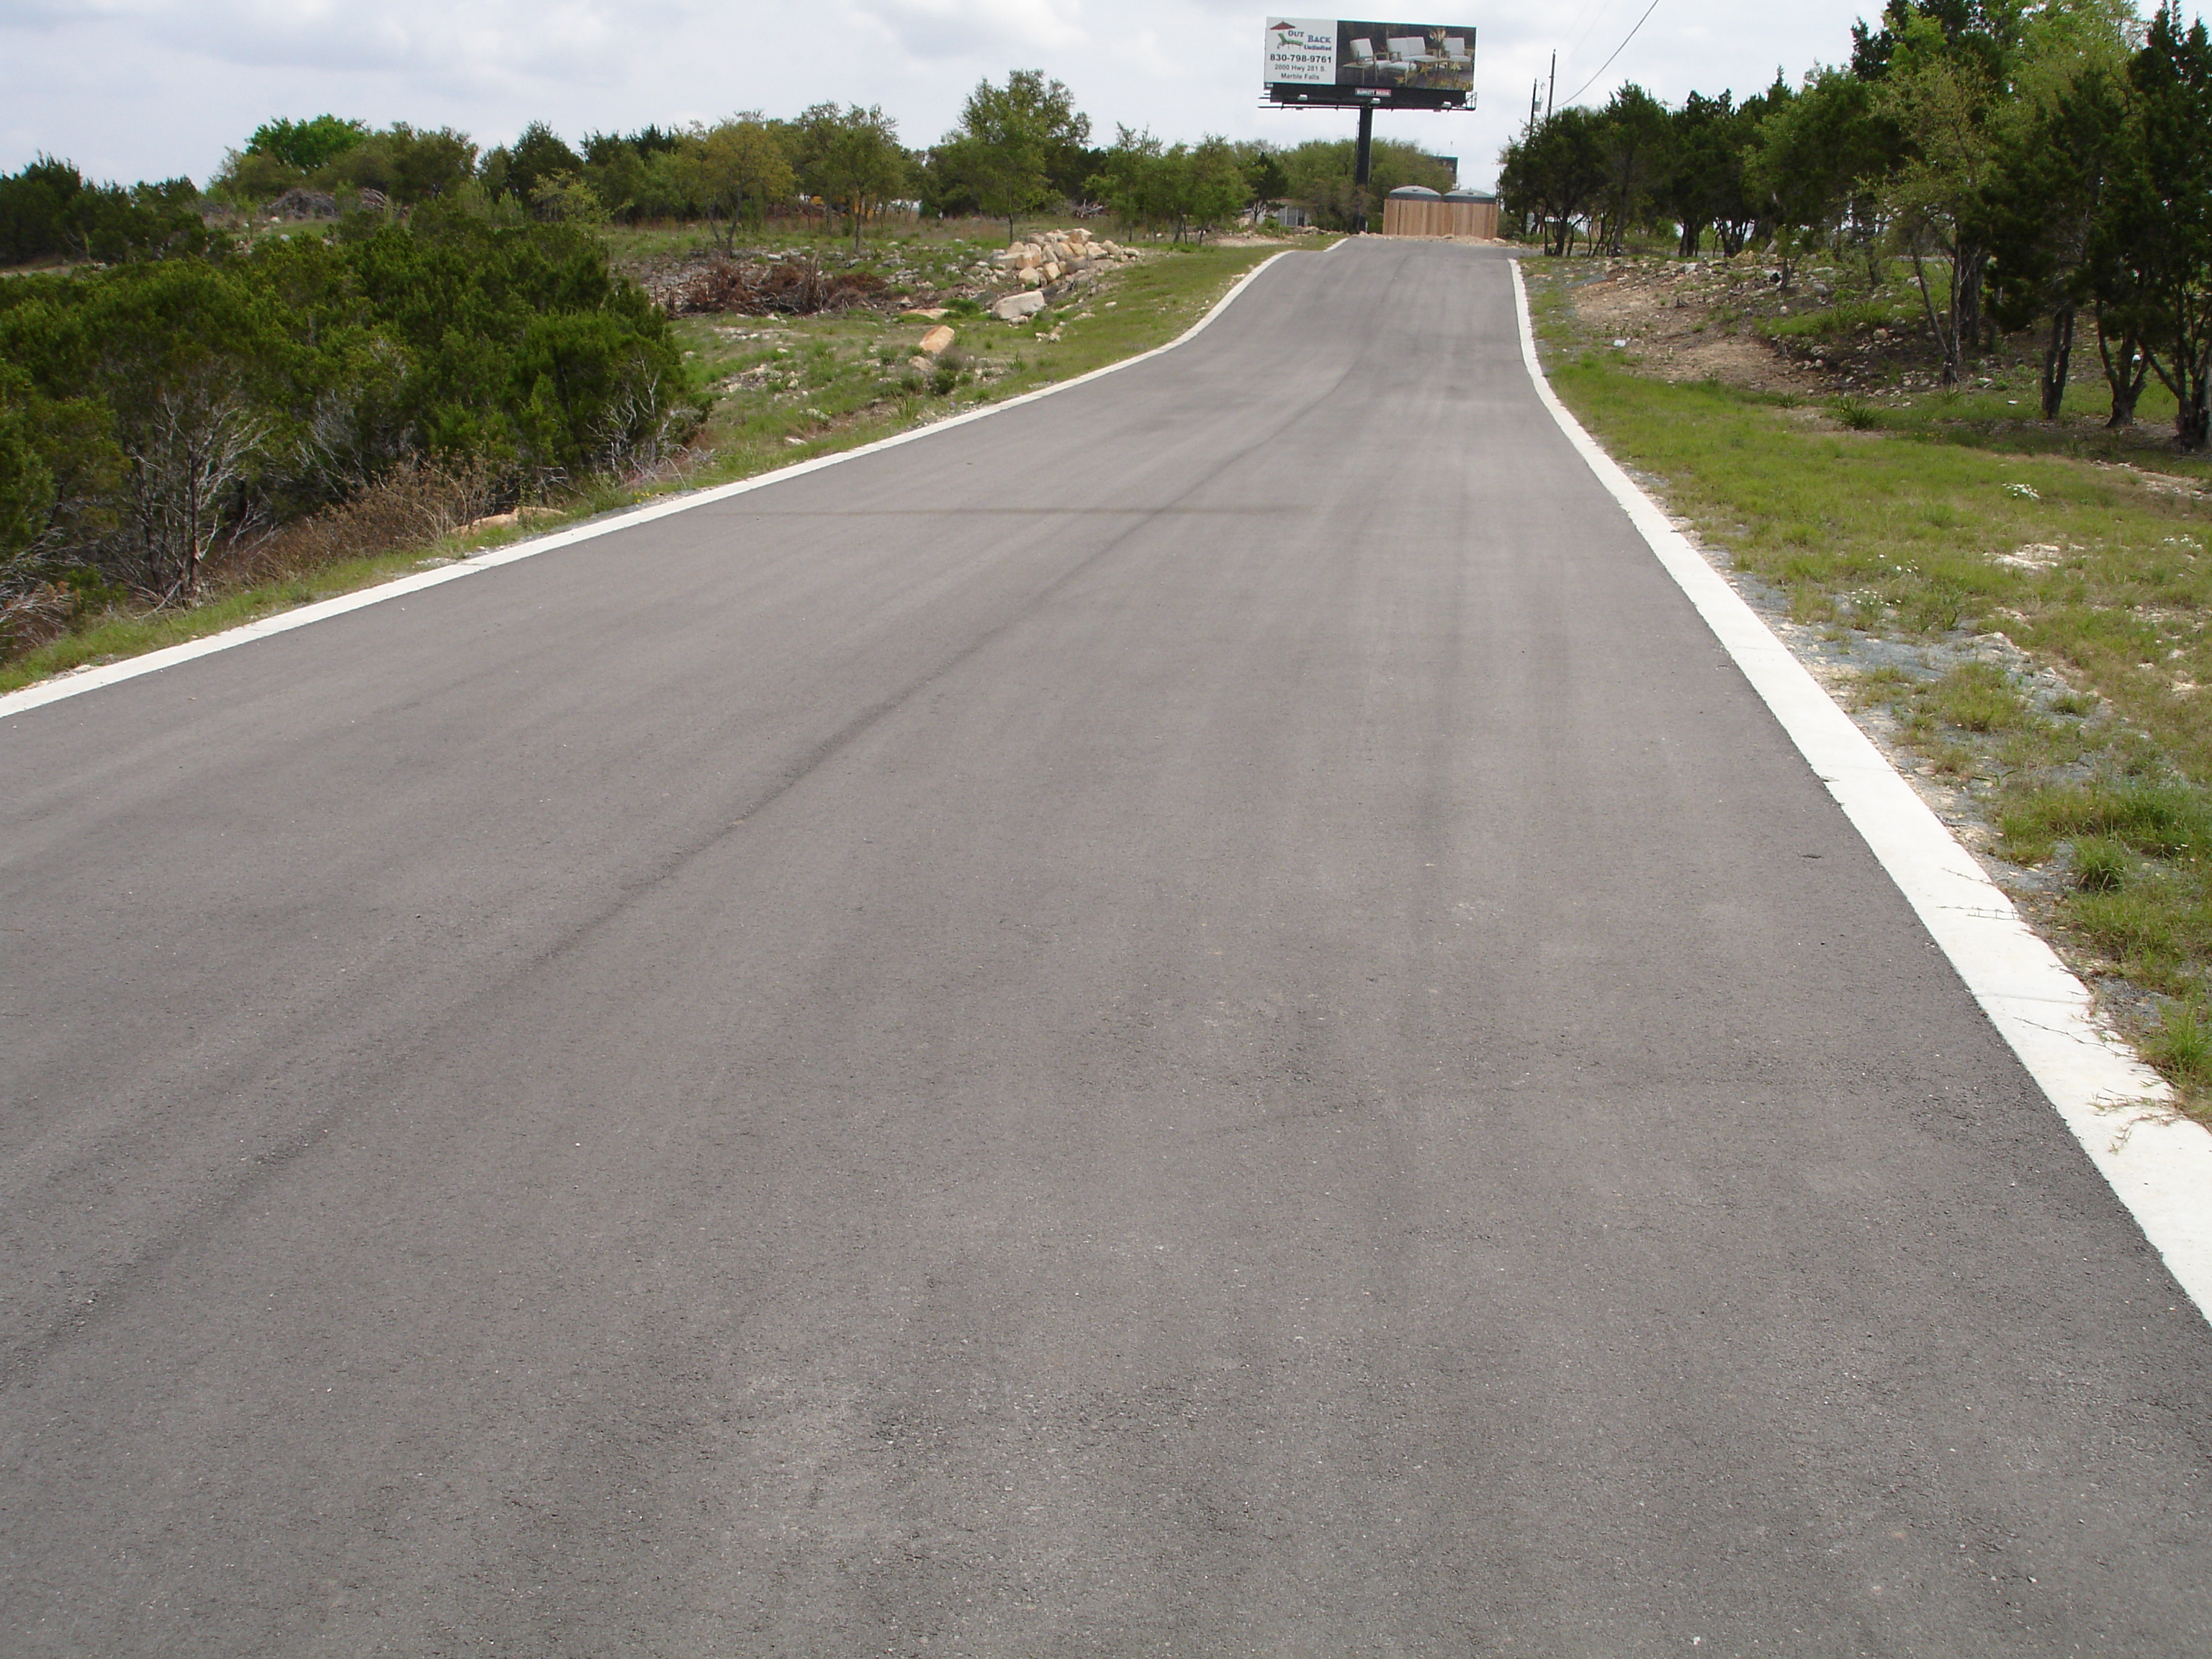 Asphalt: The meaning of the dream in which you see 'Asphalt'